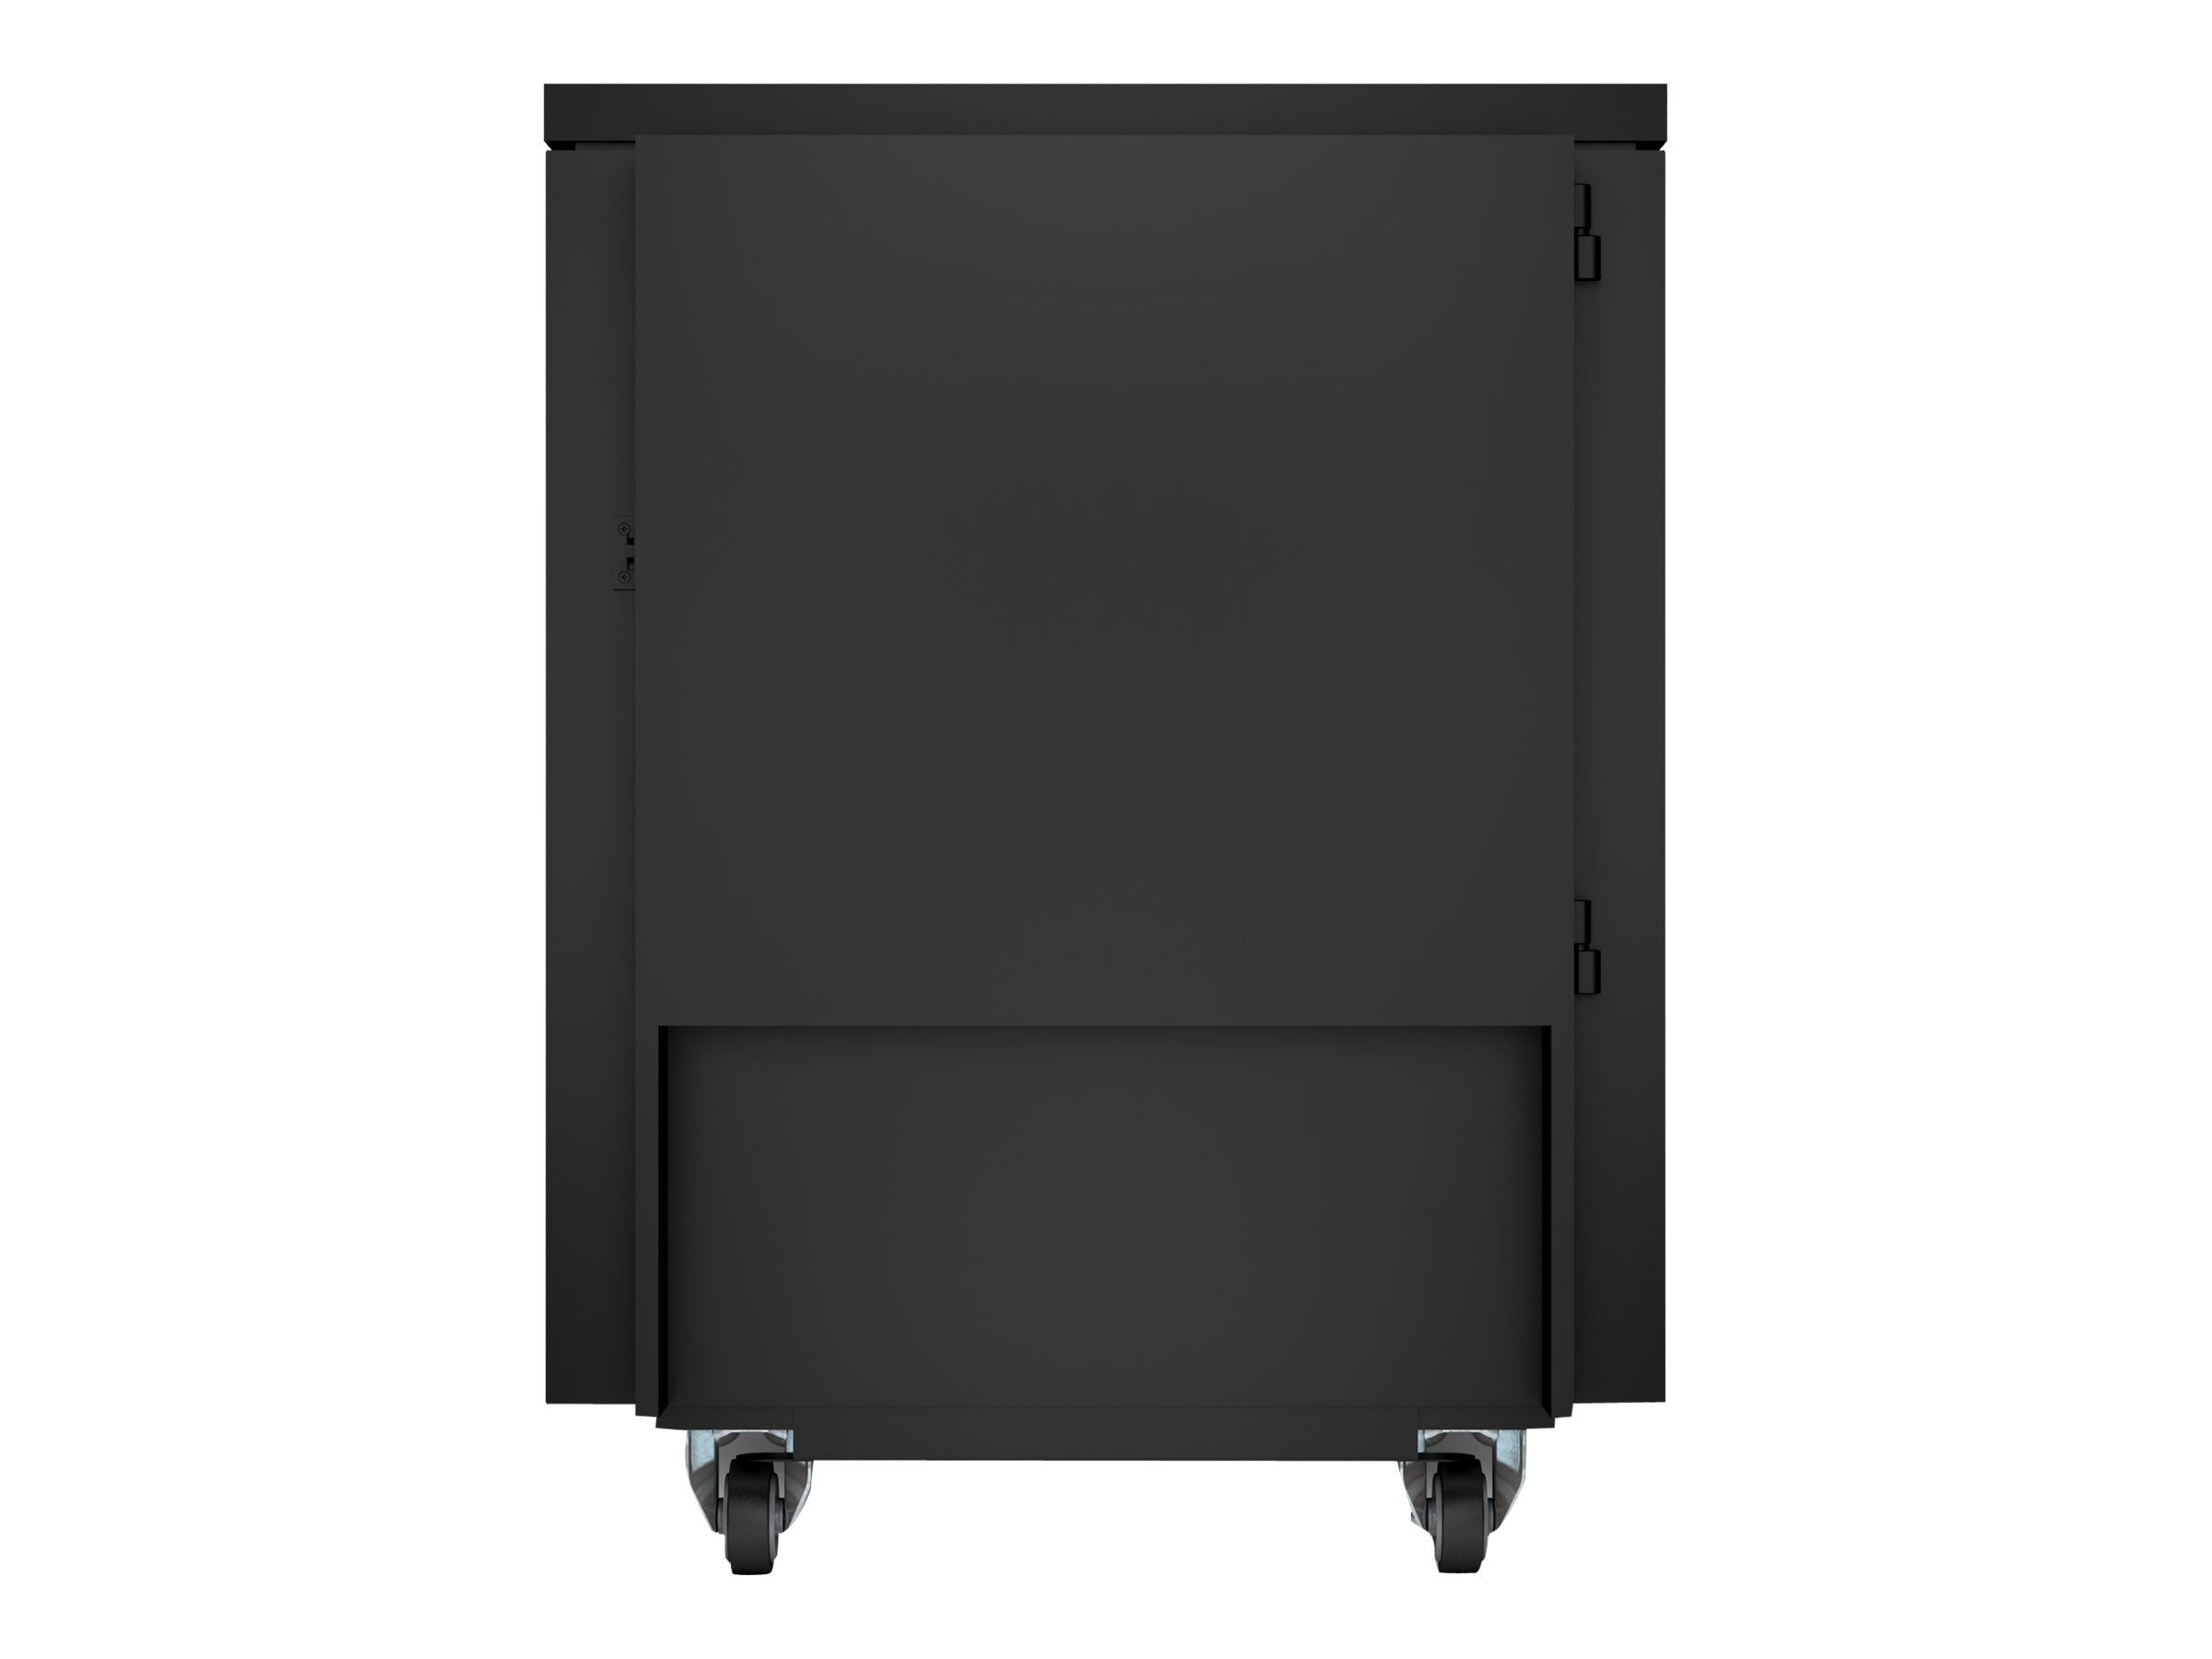 APC Netshelter CX 18U 750mm x 1130mm Enclosure, Black Finish